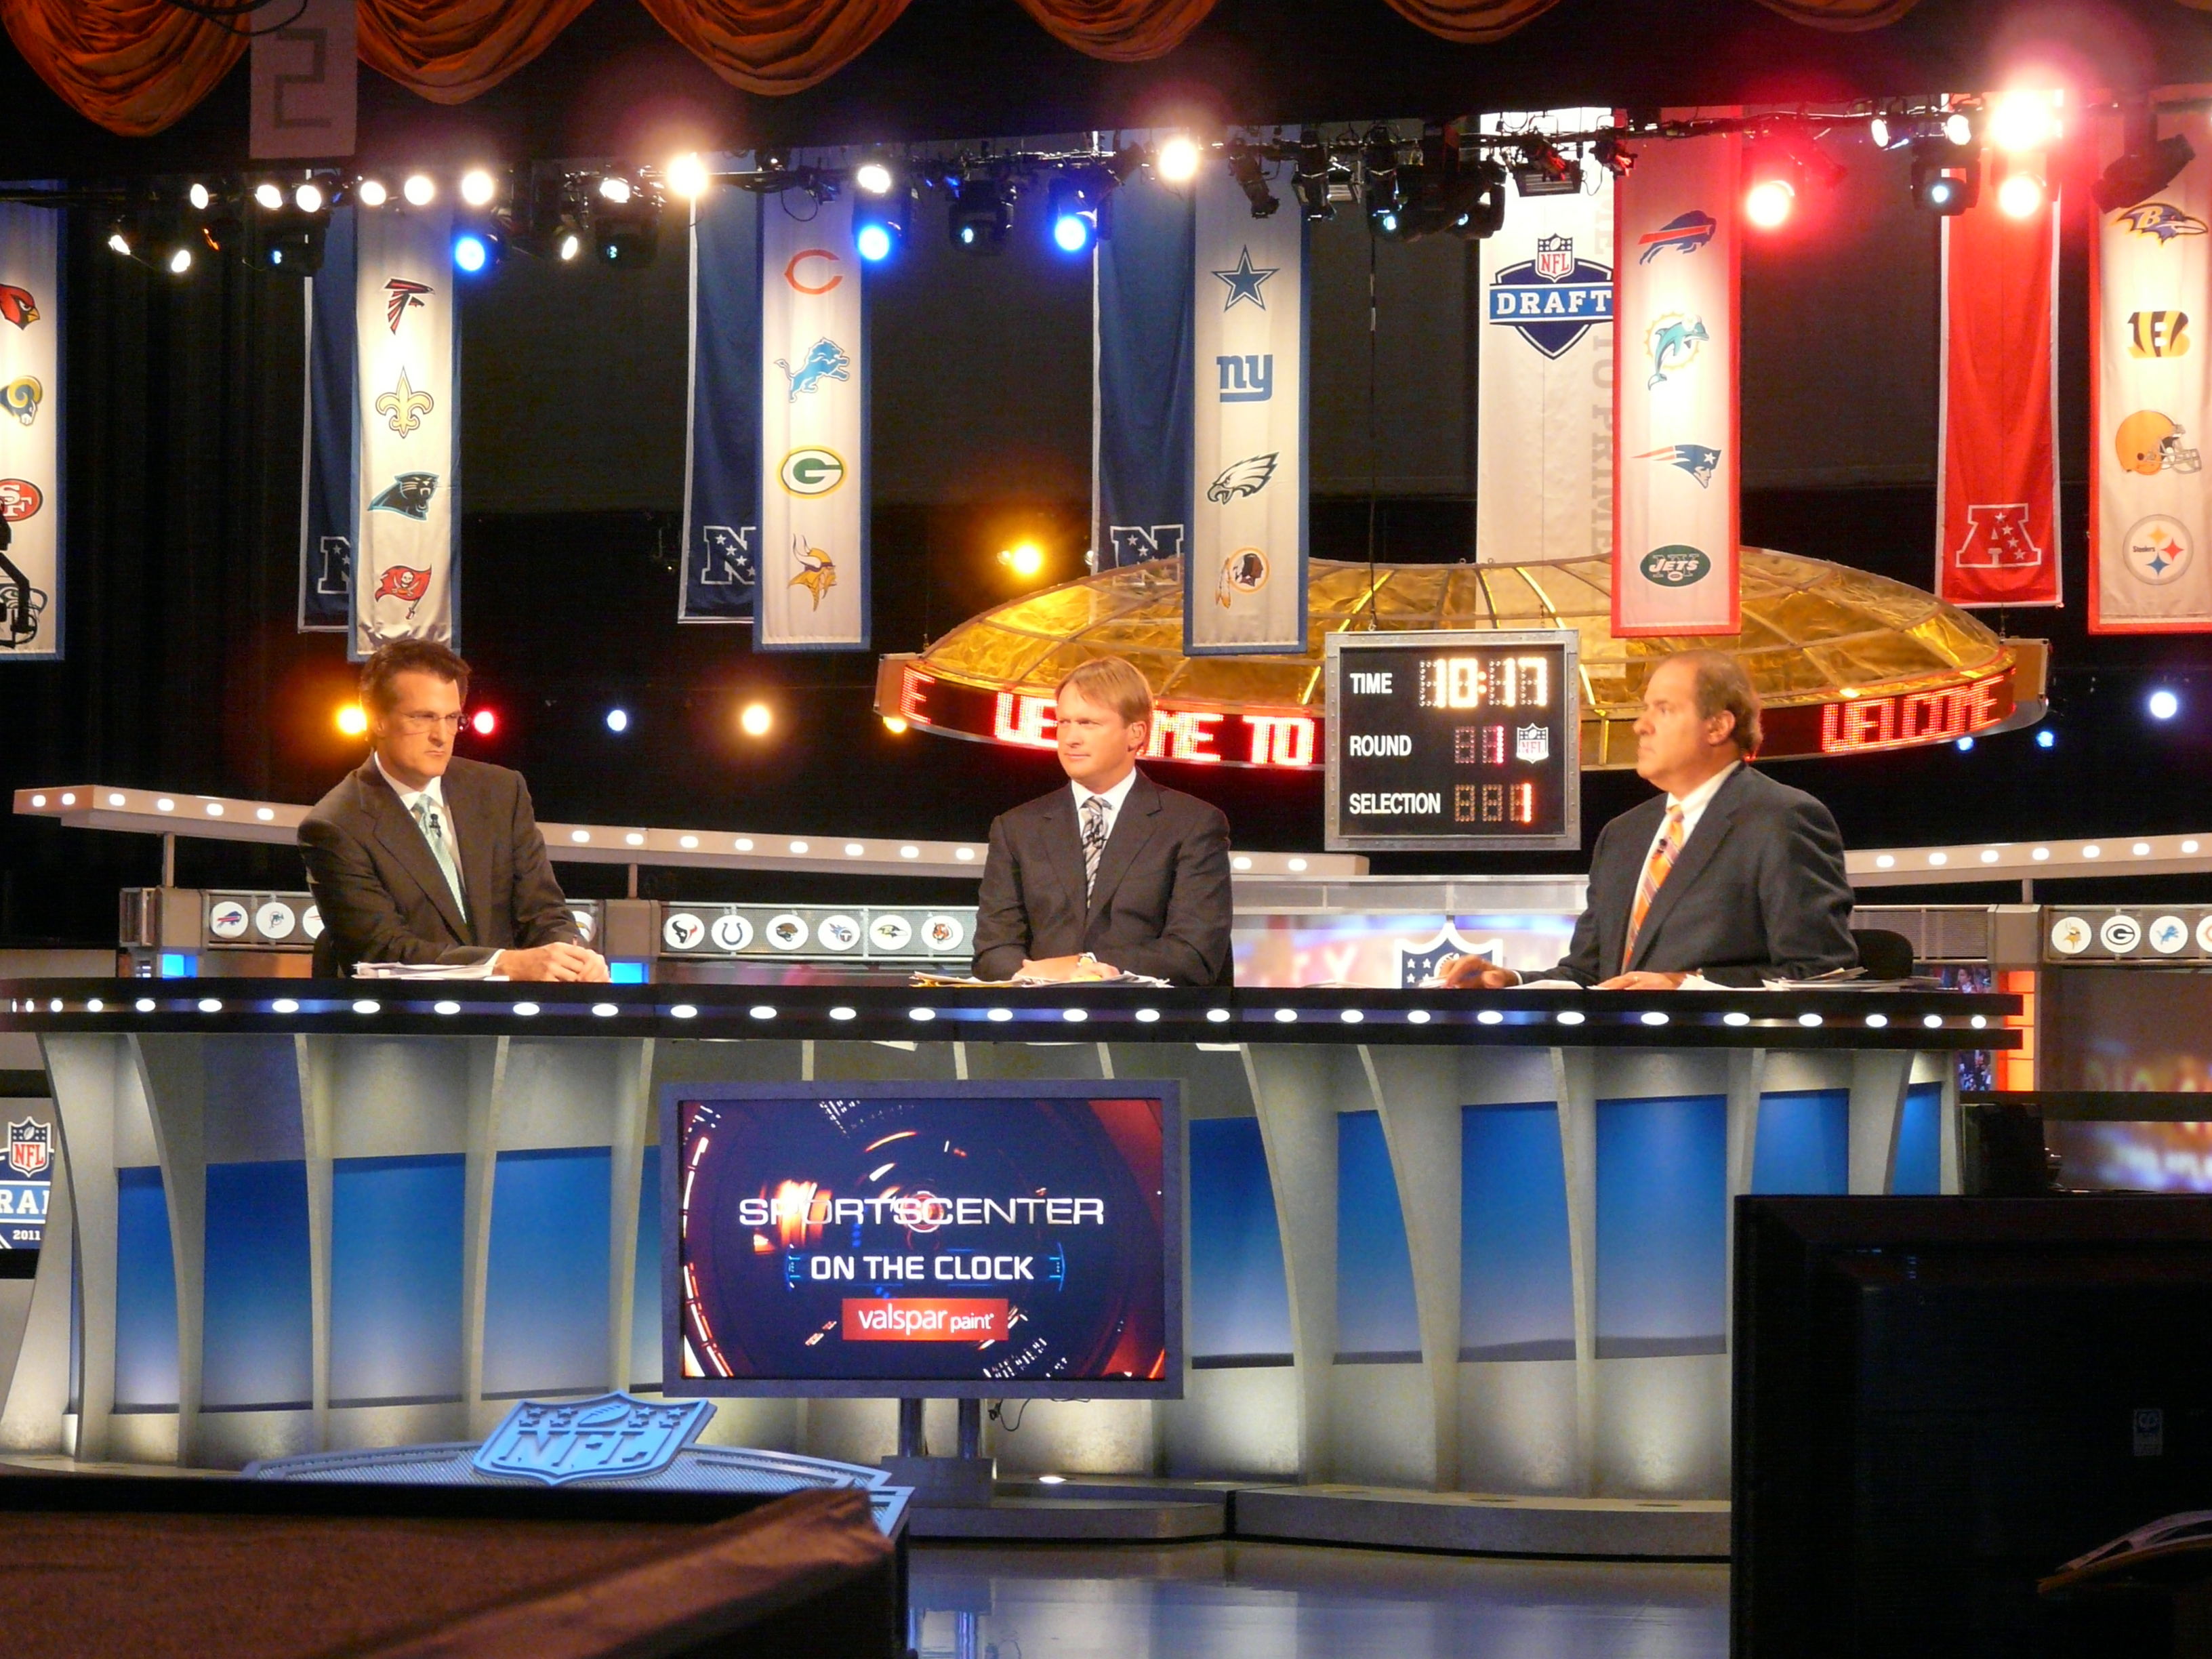 Nfl Trade Chart: 2011 NFL Draft ESPN Set (5667899257) (4).jpg - Wikimedia Commons,Chart